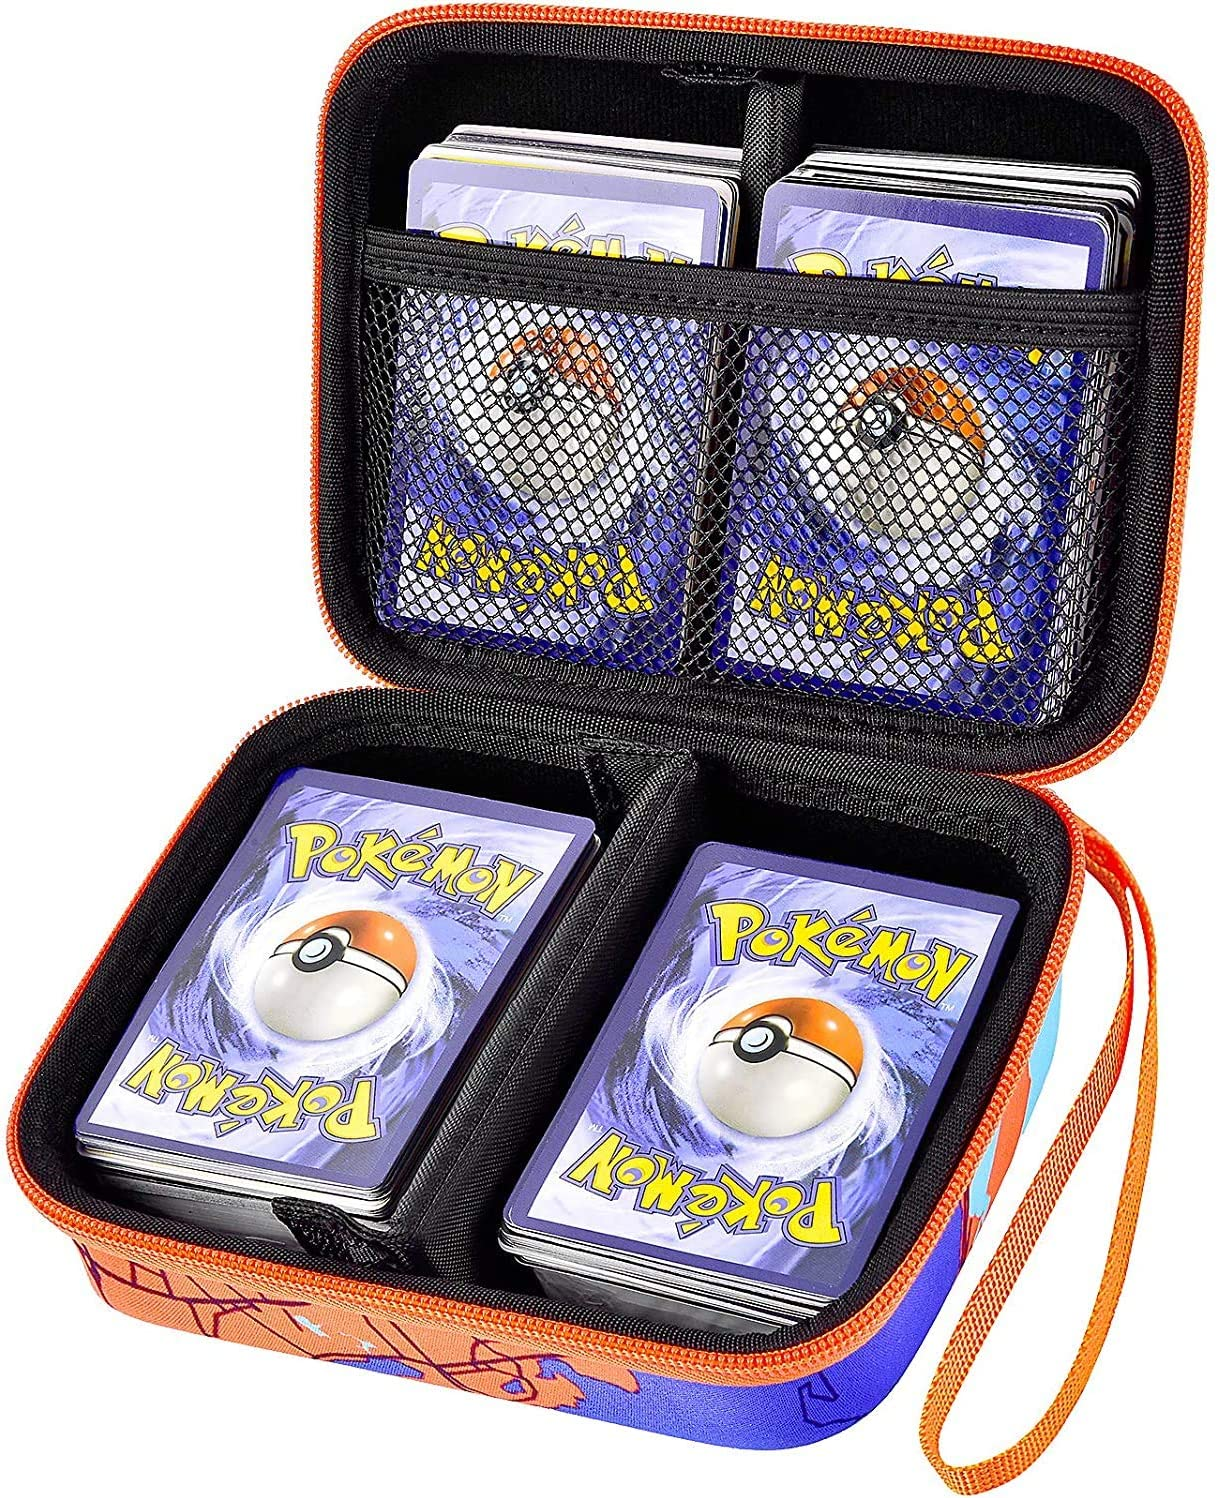 Cards Box Case Compatible with Pokemon Trading Card, Fits Up to 400+ PM TCG Card Game Holder Storage Boxes for 1st Edition PM Booster Packs -Orange